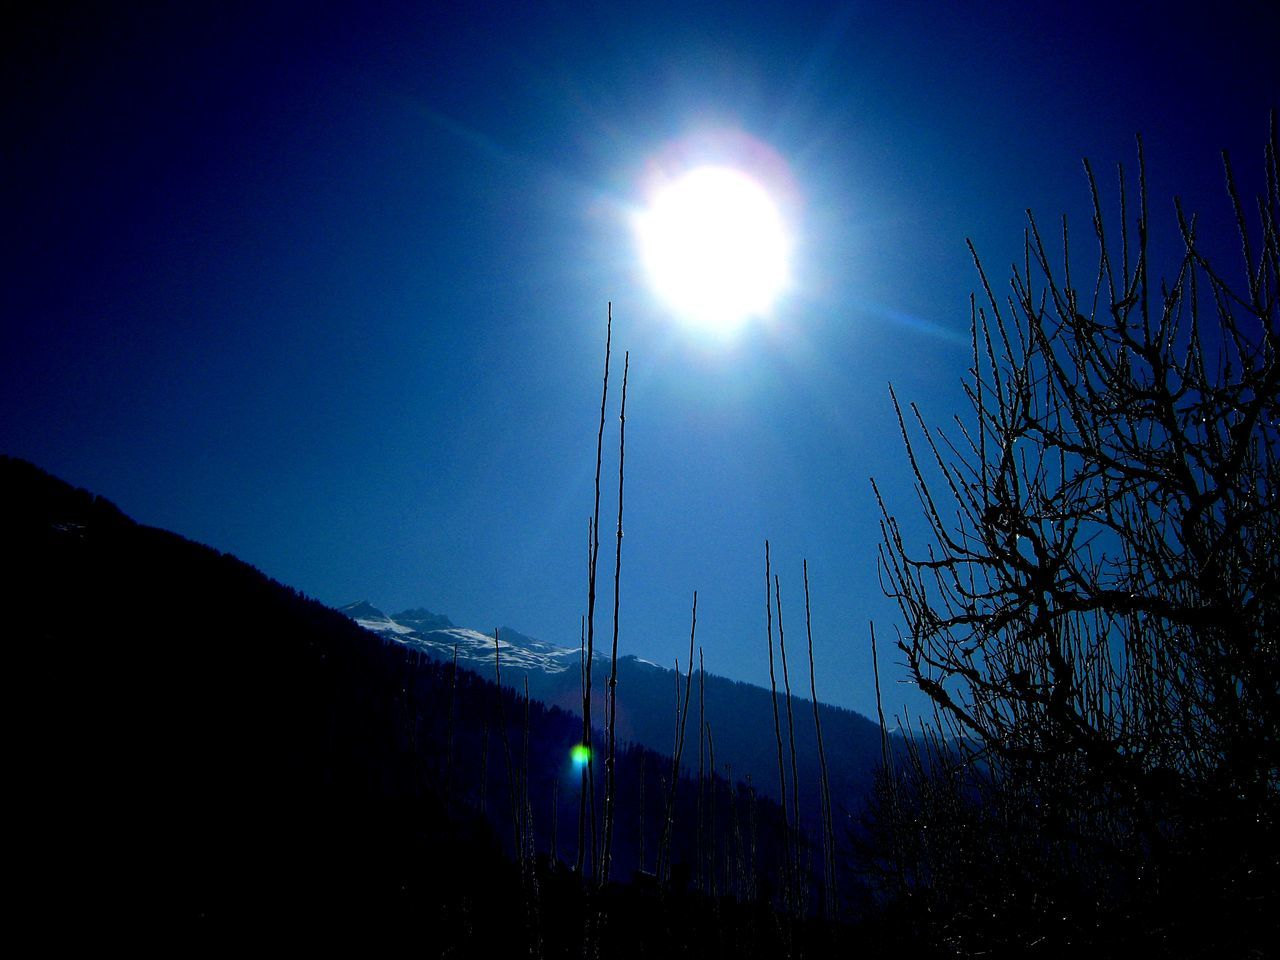 Mountain And Sky Nature Nature_collection Sun And Sky Sunny Cold Day Sunny Day Sunny Showy Tree And Sunlight